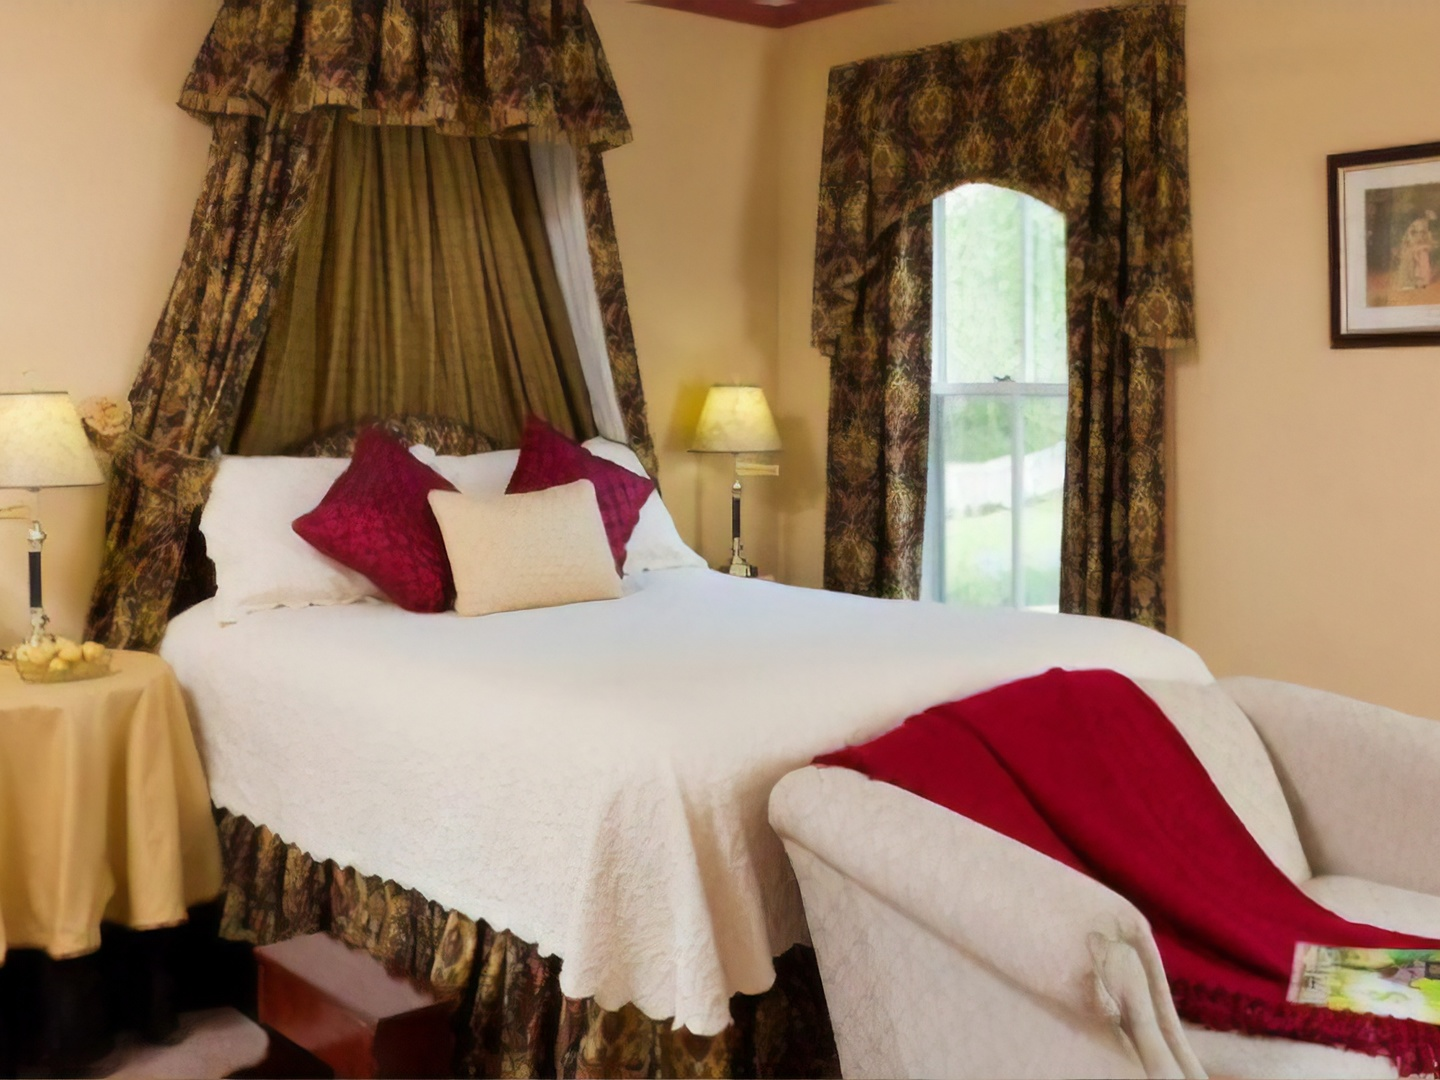 A double bed in a hotel room at Afton Mountain Bed & Breakfast.